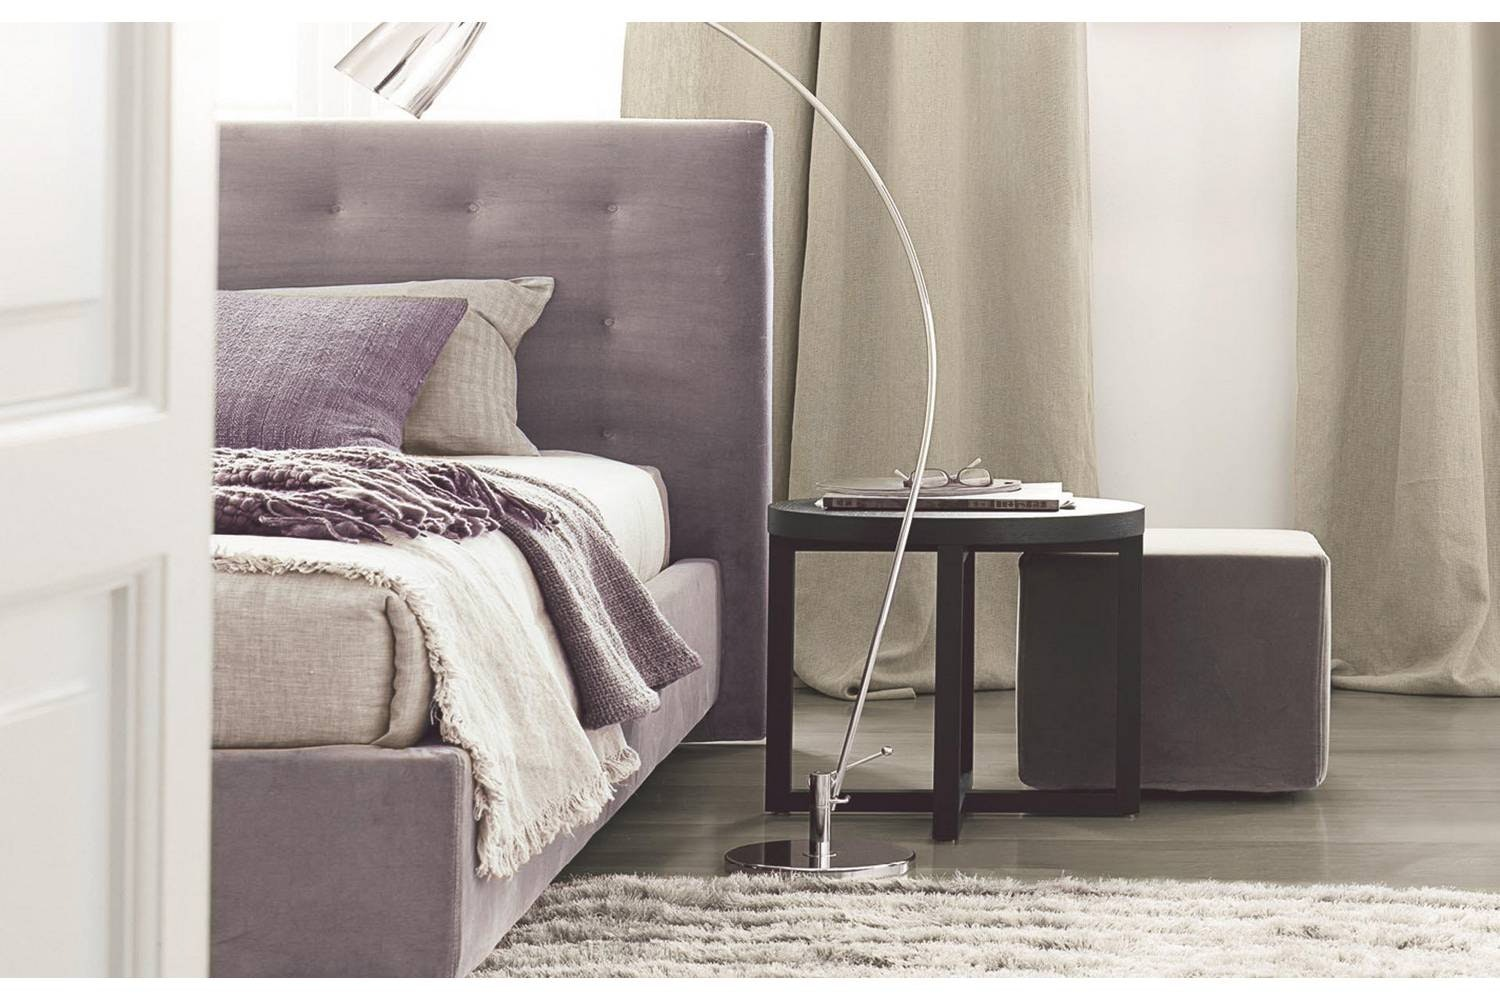 Arca Bed by Paolo Piva for Poliform